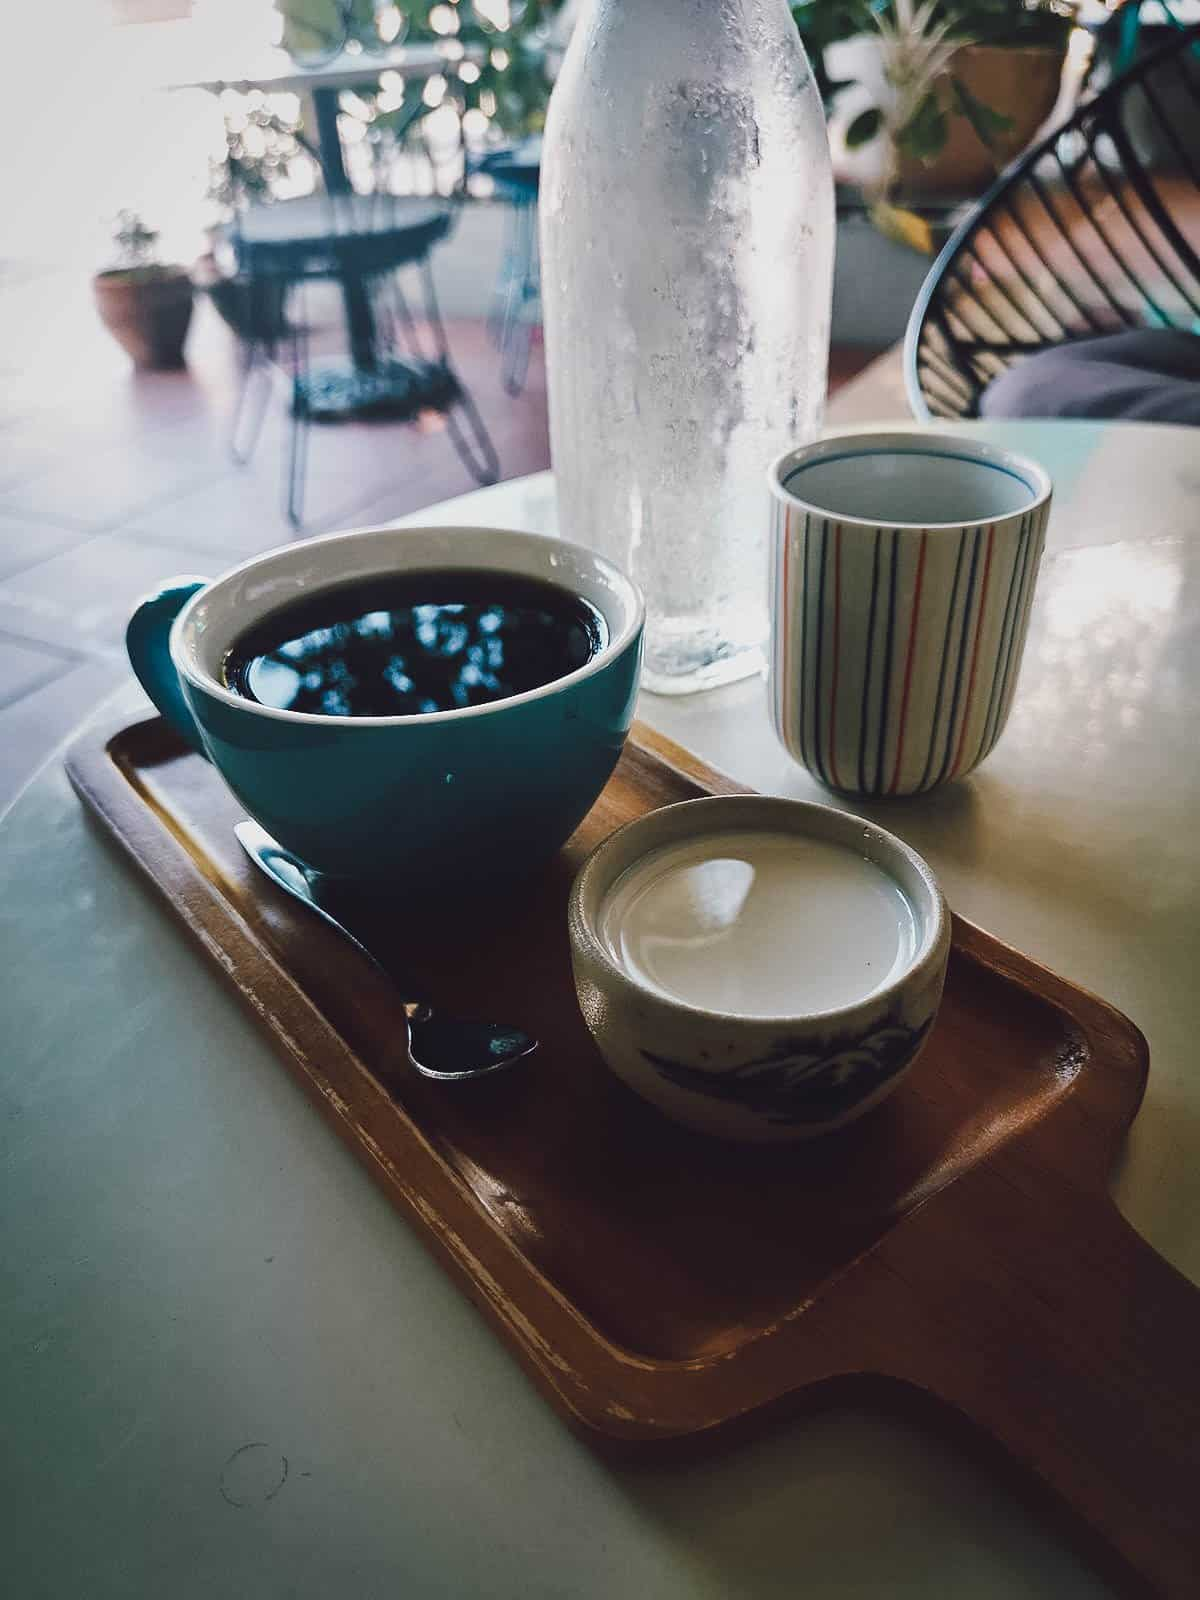 Black coffee at Phin Coffee in Hoi An, Vietnam